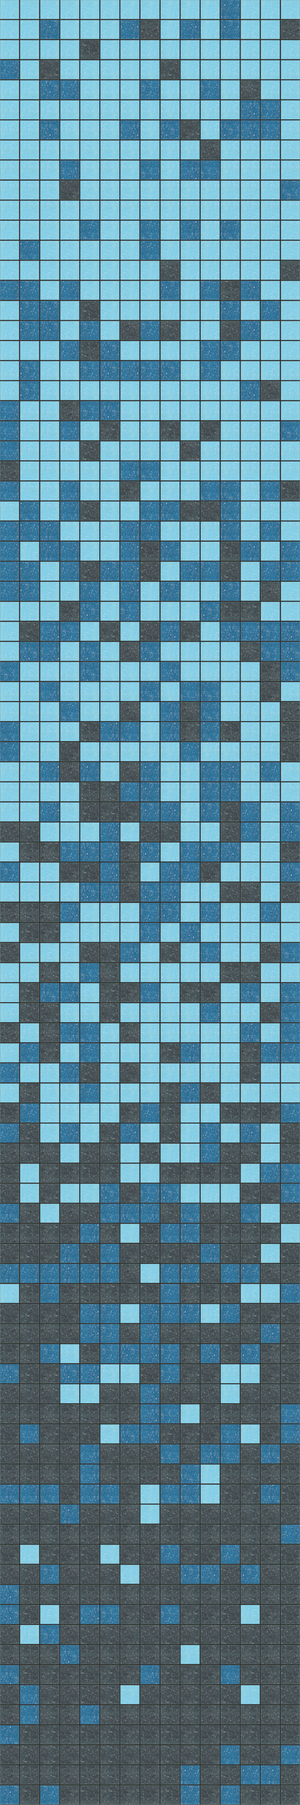 Brio Glass Mosaic Tile |  Brio Nautical Gradient